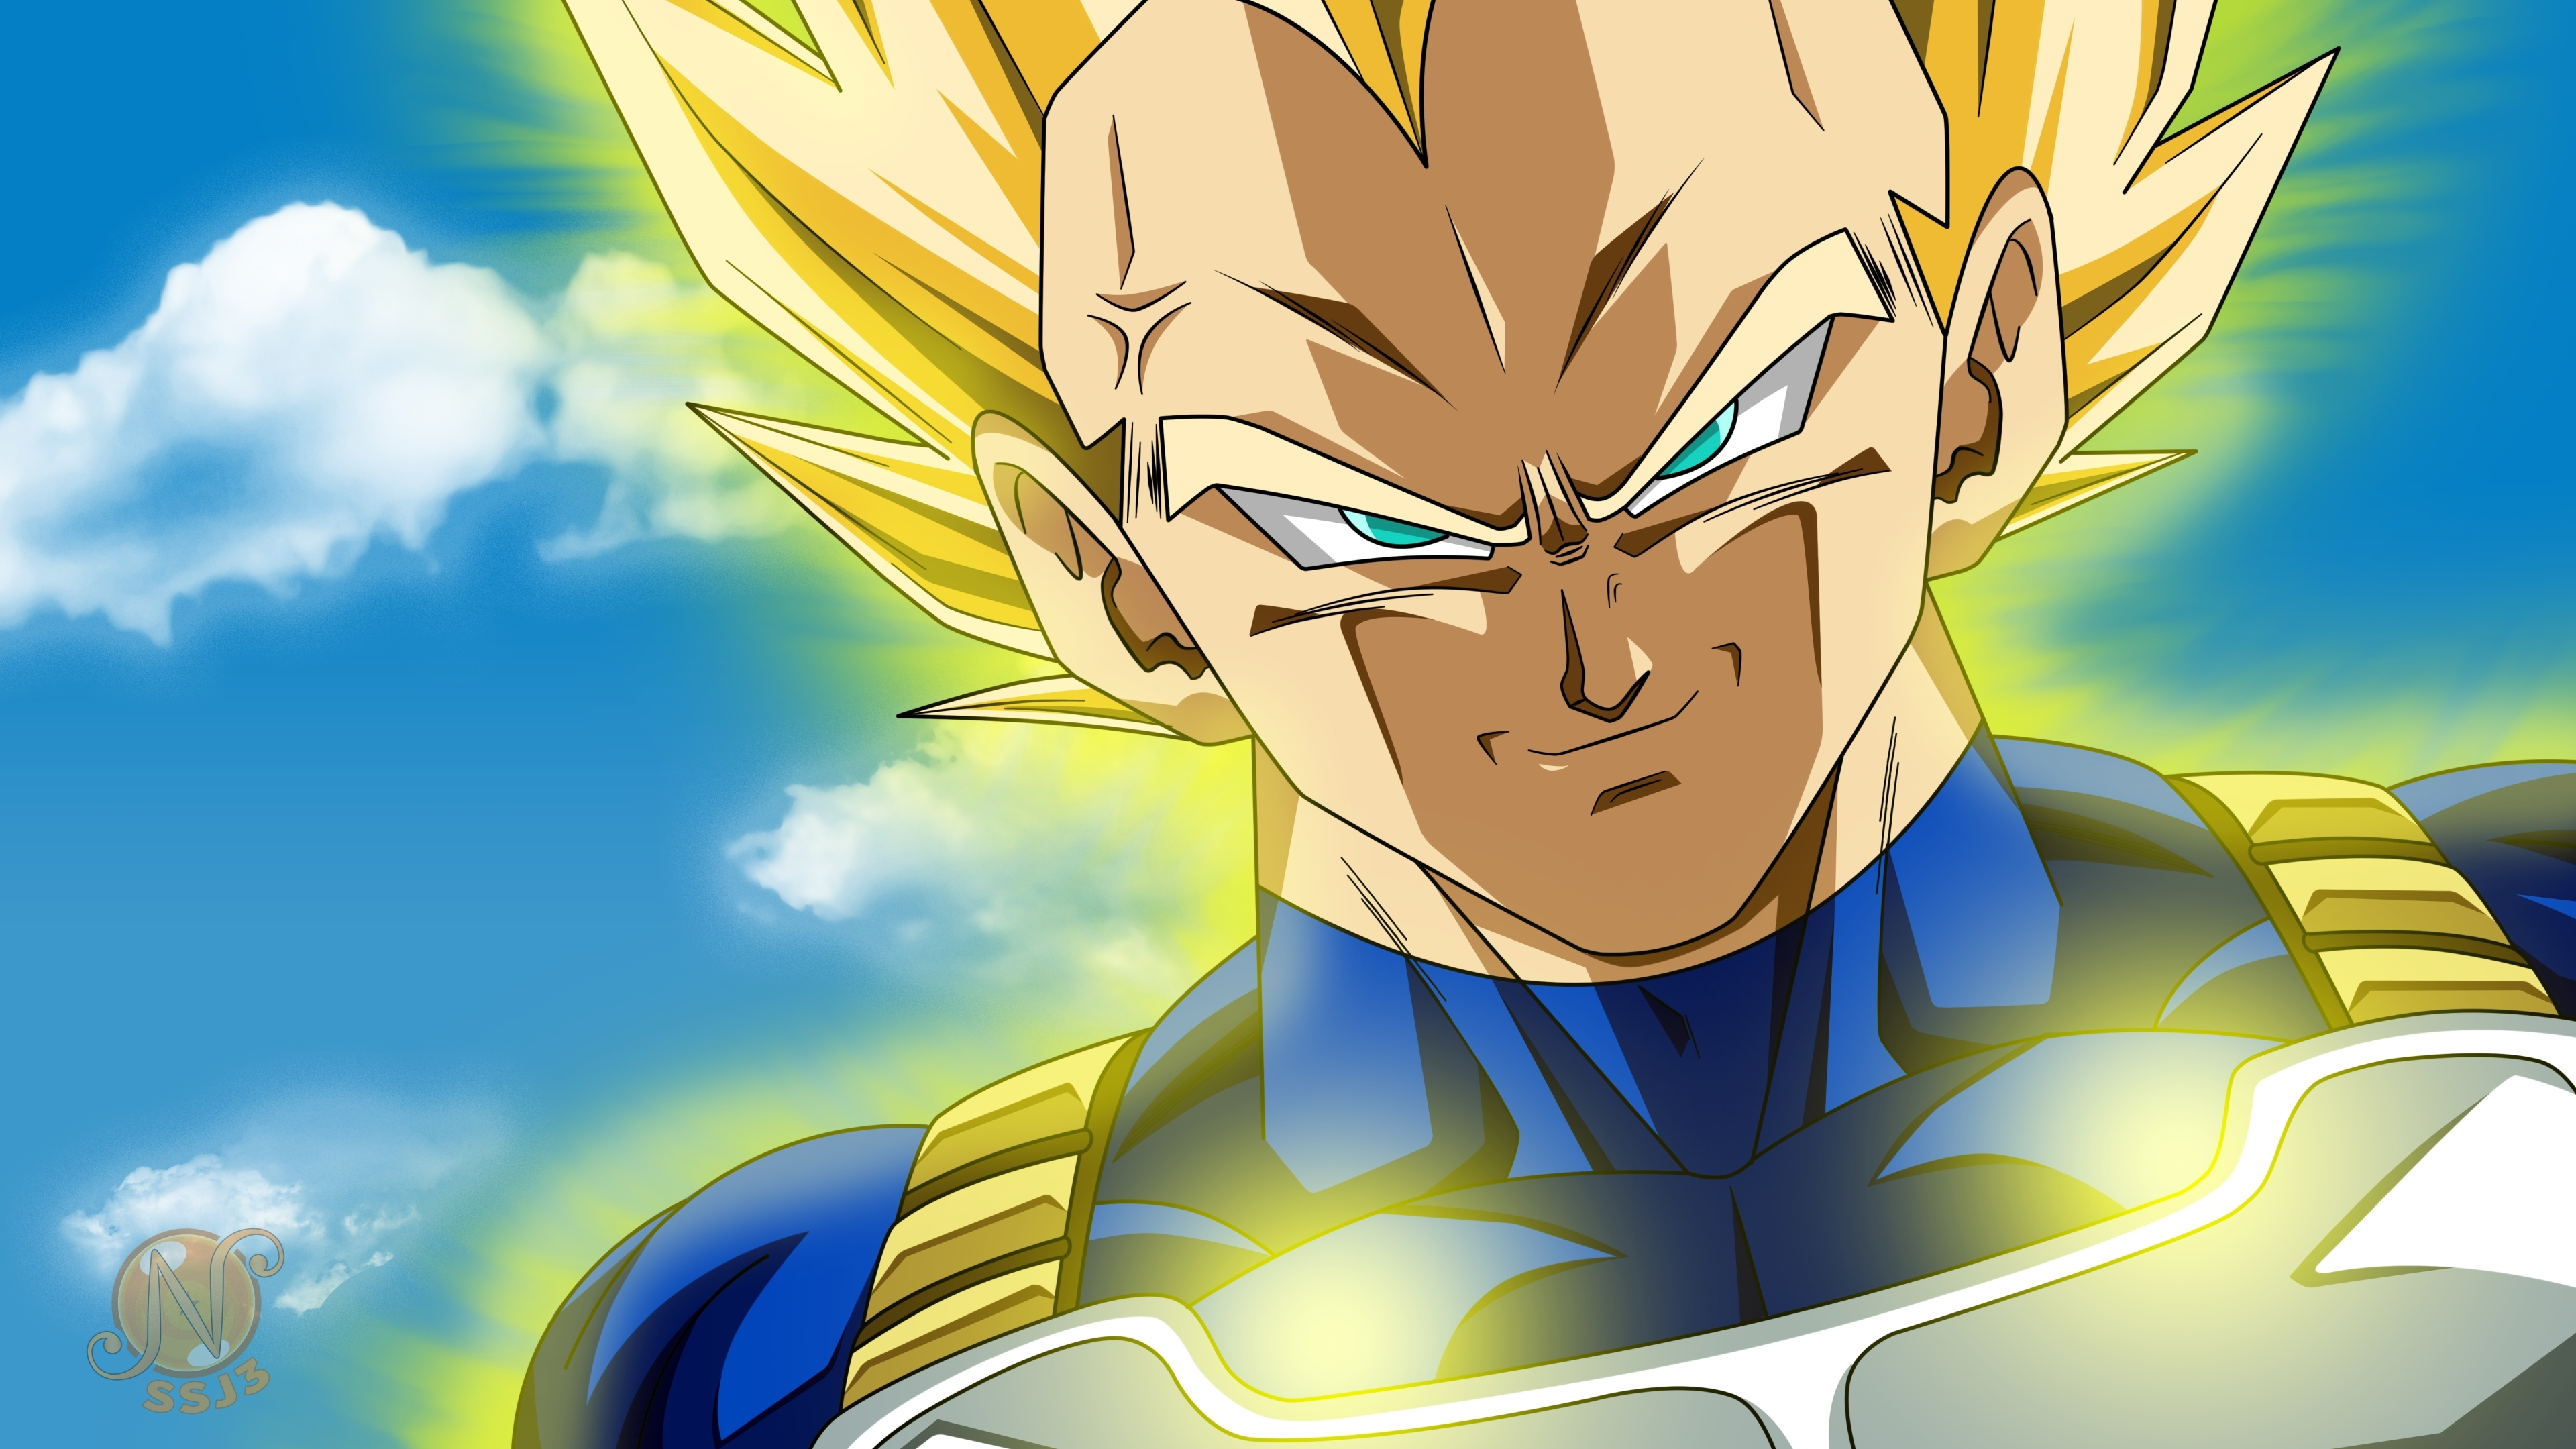 3840x2160 Vegeta Dragon Ball 4k 4k Wallpaper Hd Anime 4k Wallpapers Images Photos And Background